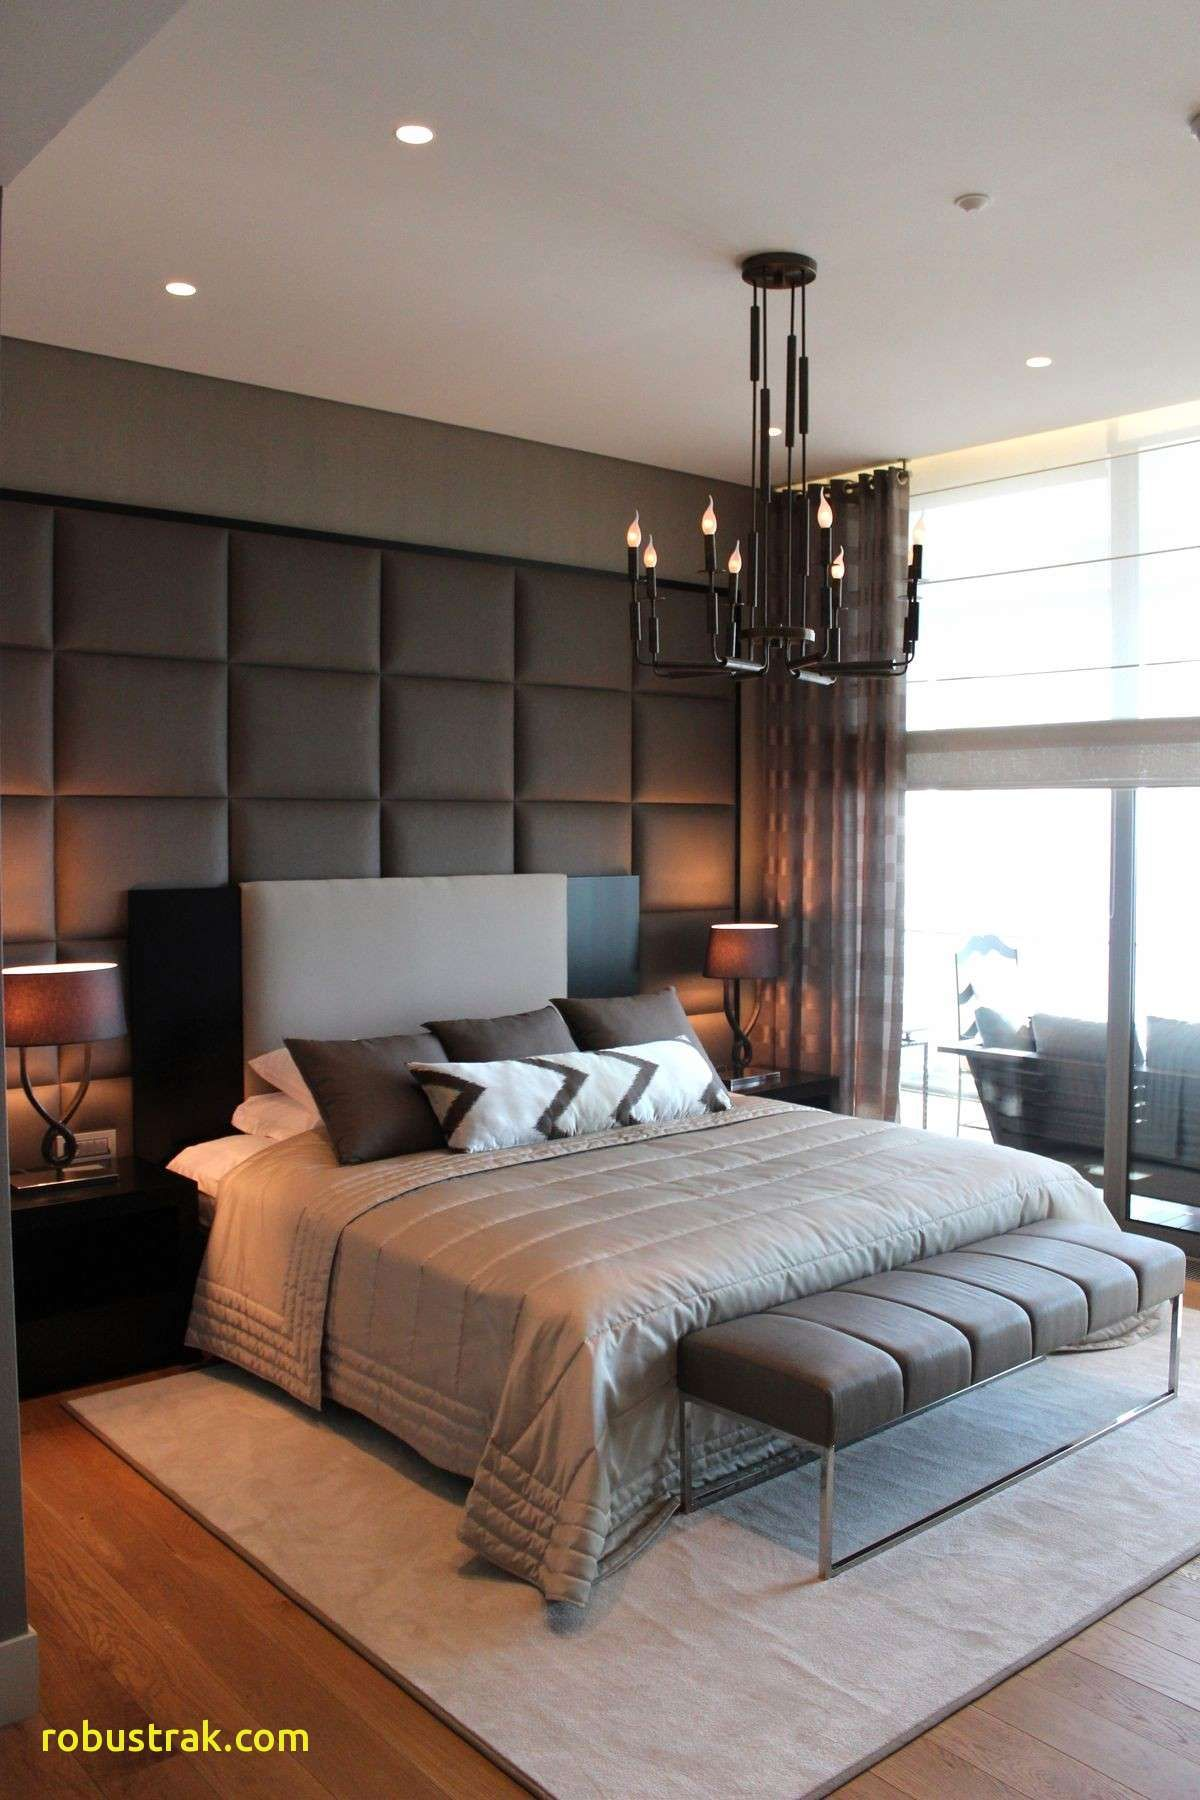 Awesome Design Bedroom Wall Home Design Ideas Pinterest